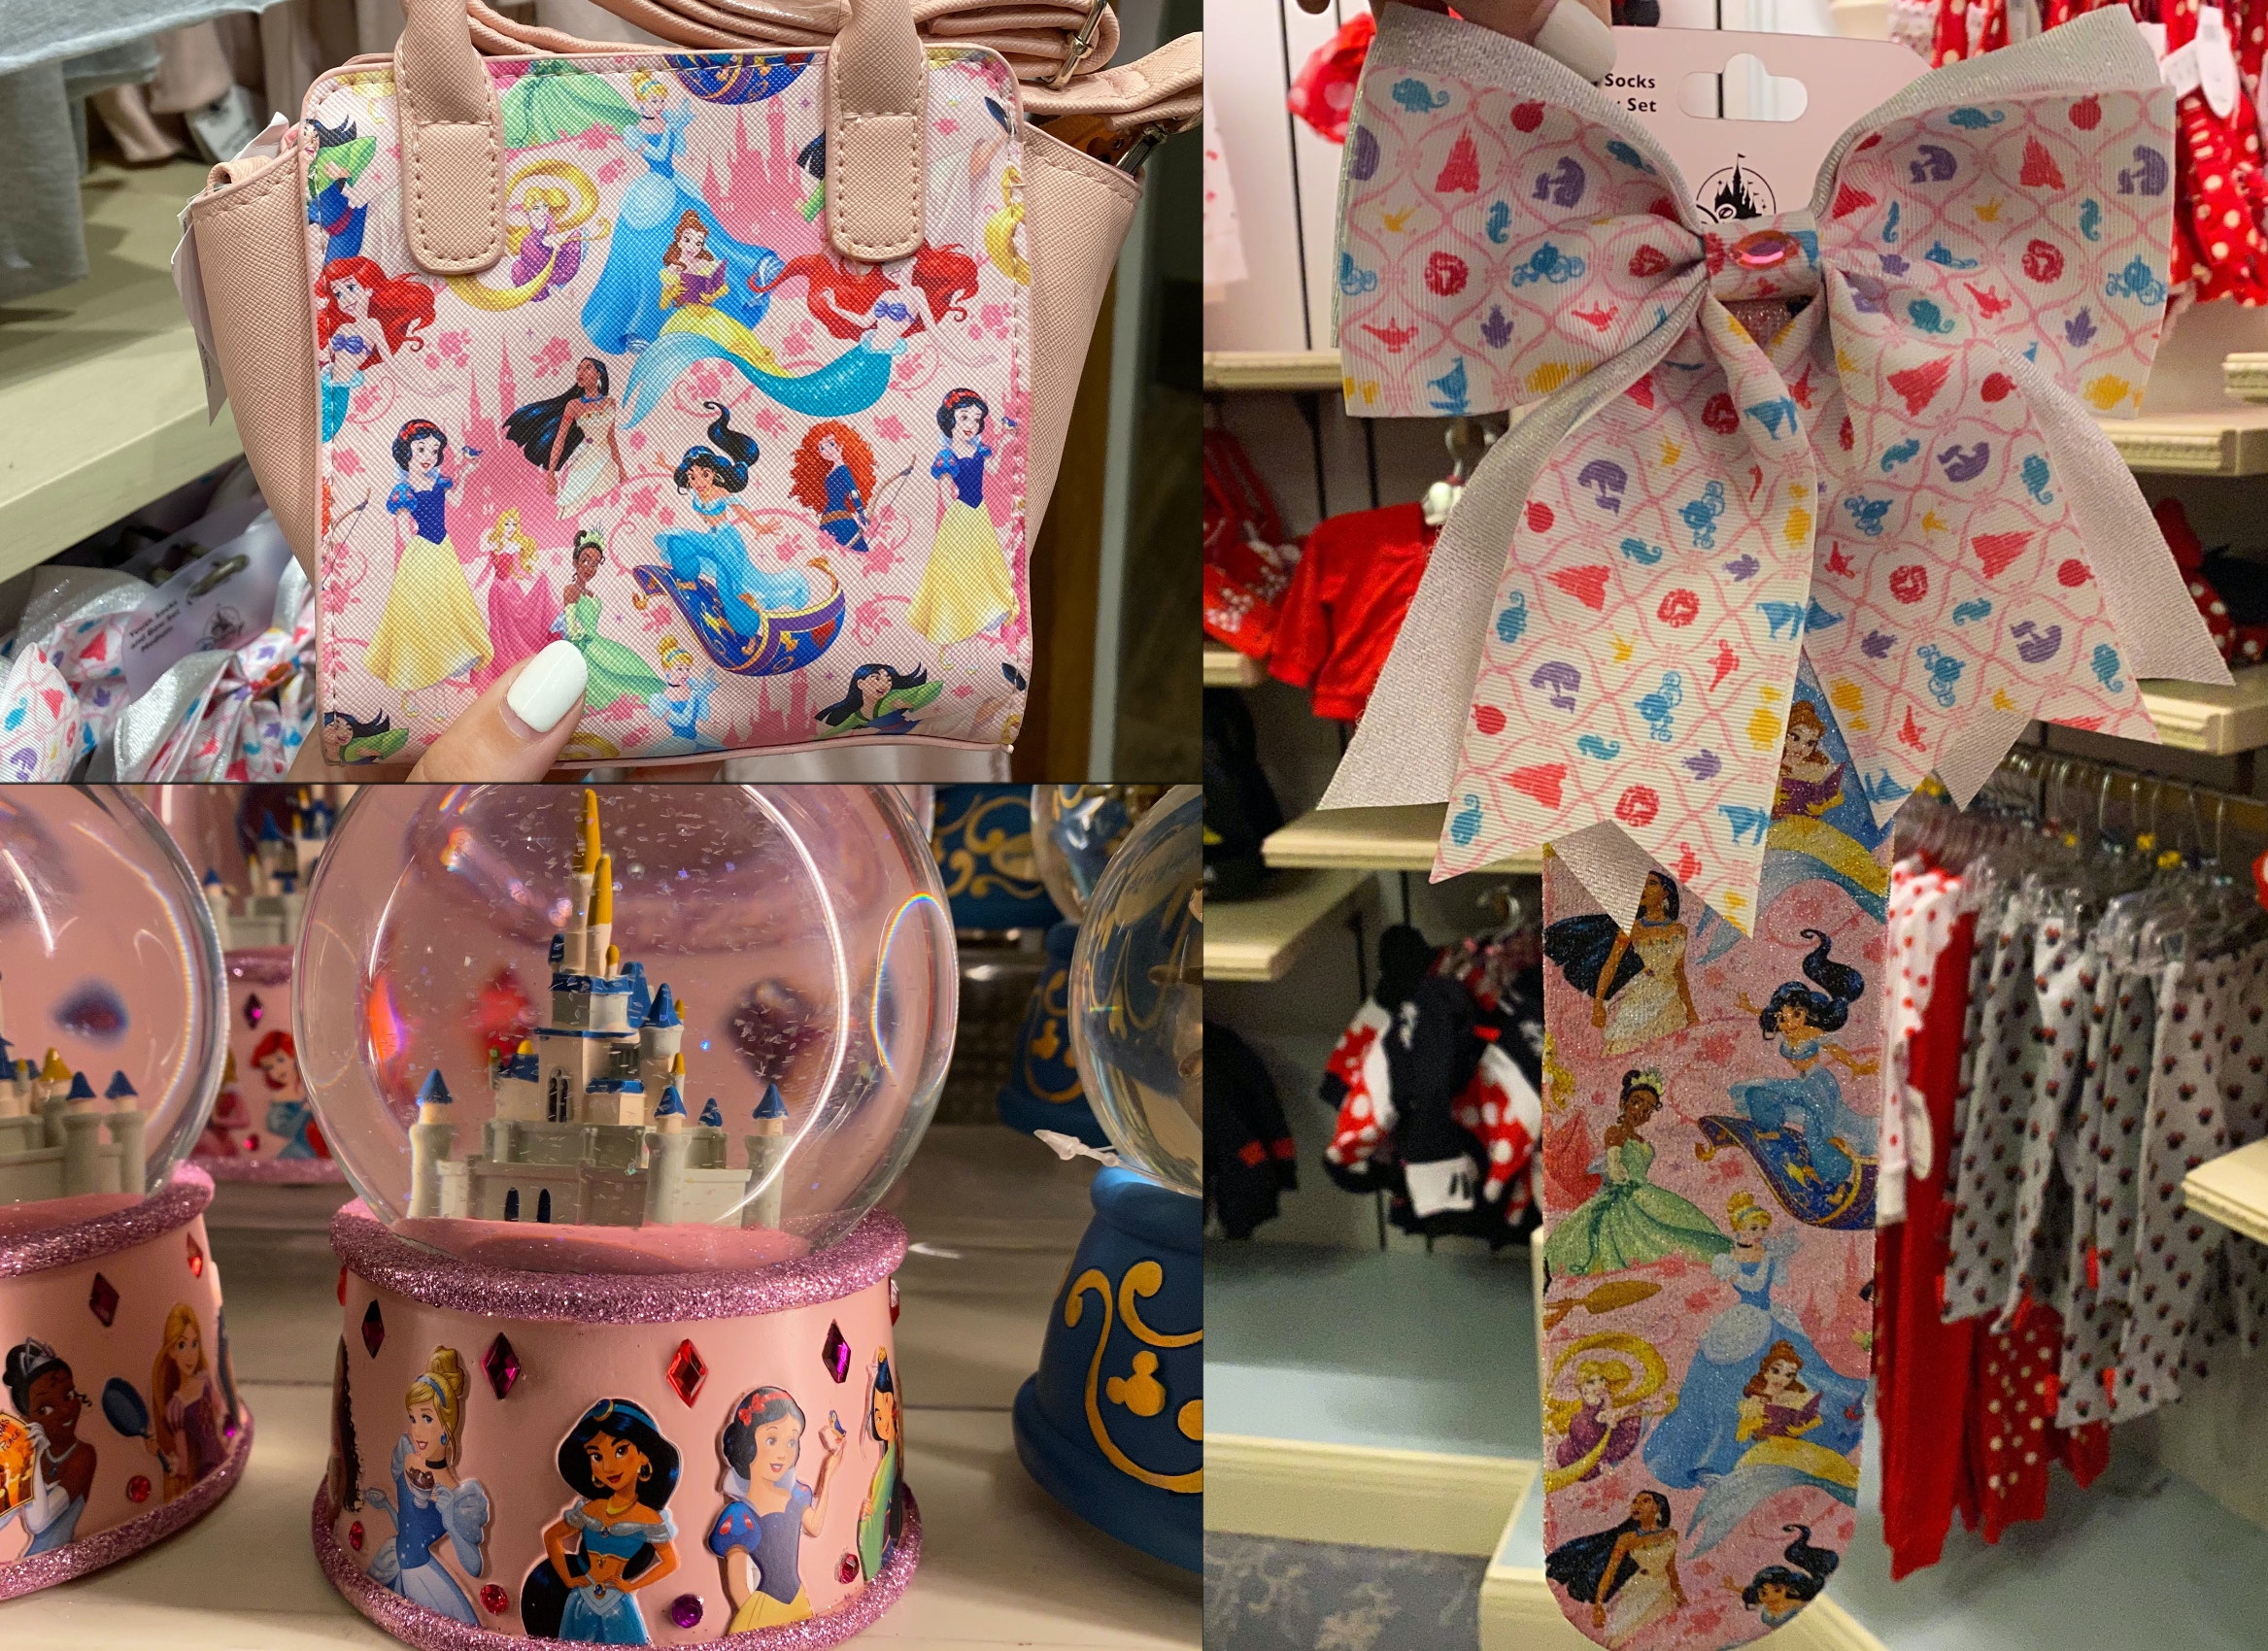 disneyland-kids-princess-collage-02-16-2020.jpg